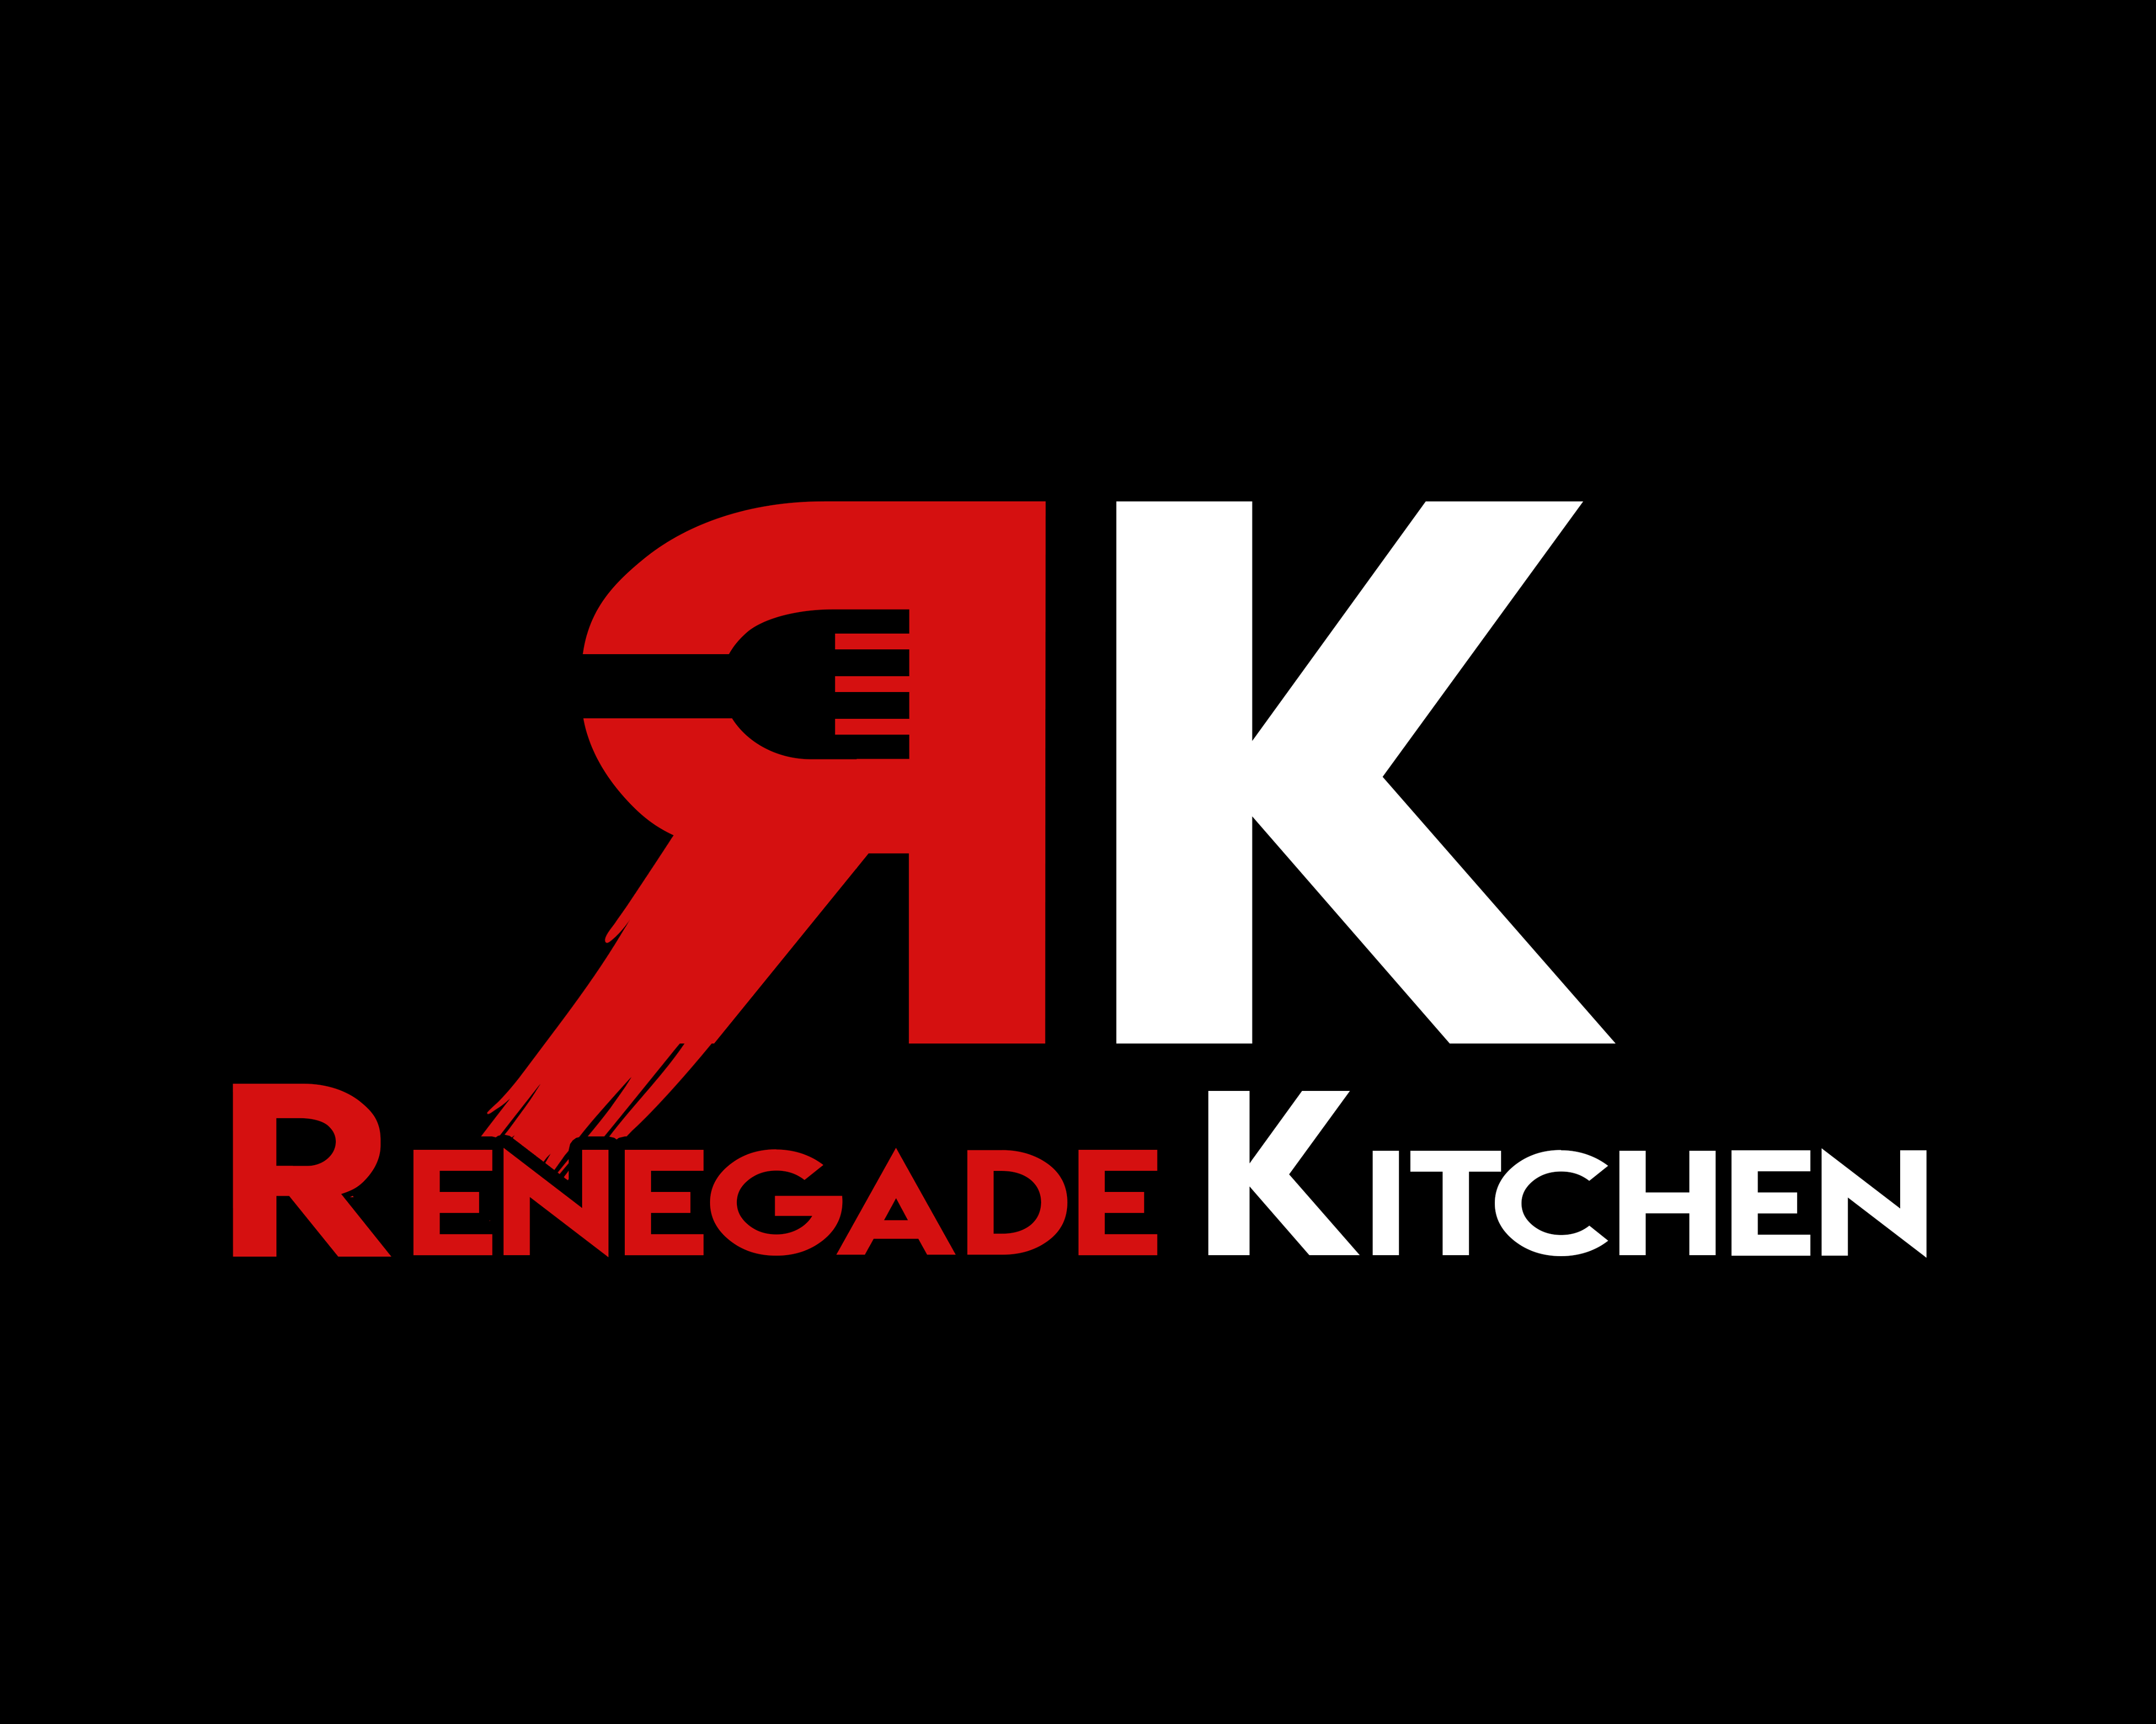 Renegade Kitchen Food Truck logo